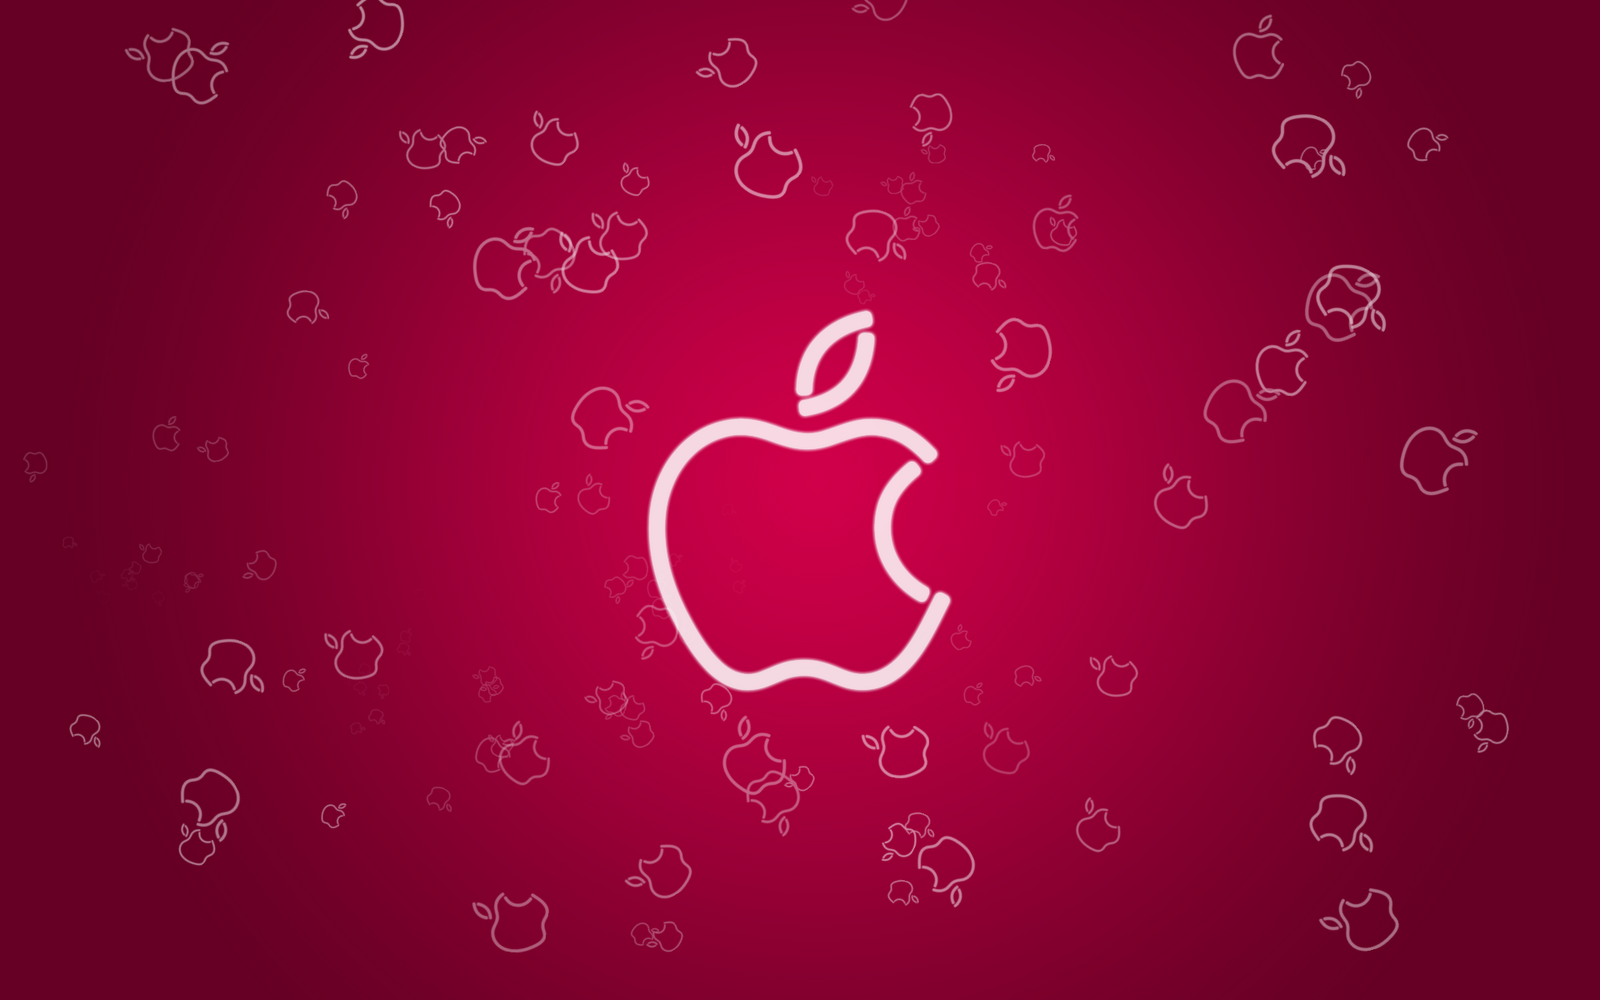 wallpapers 4k-hd Apple-alegorias.es